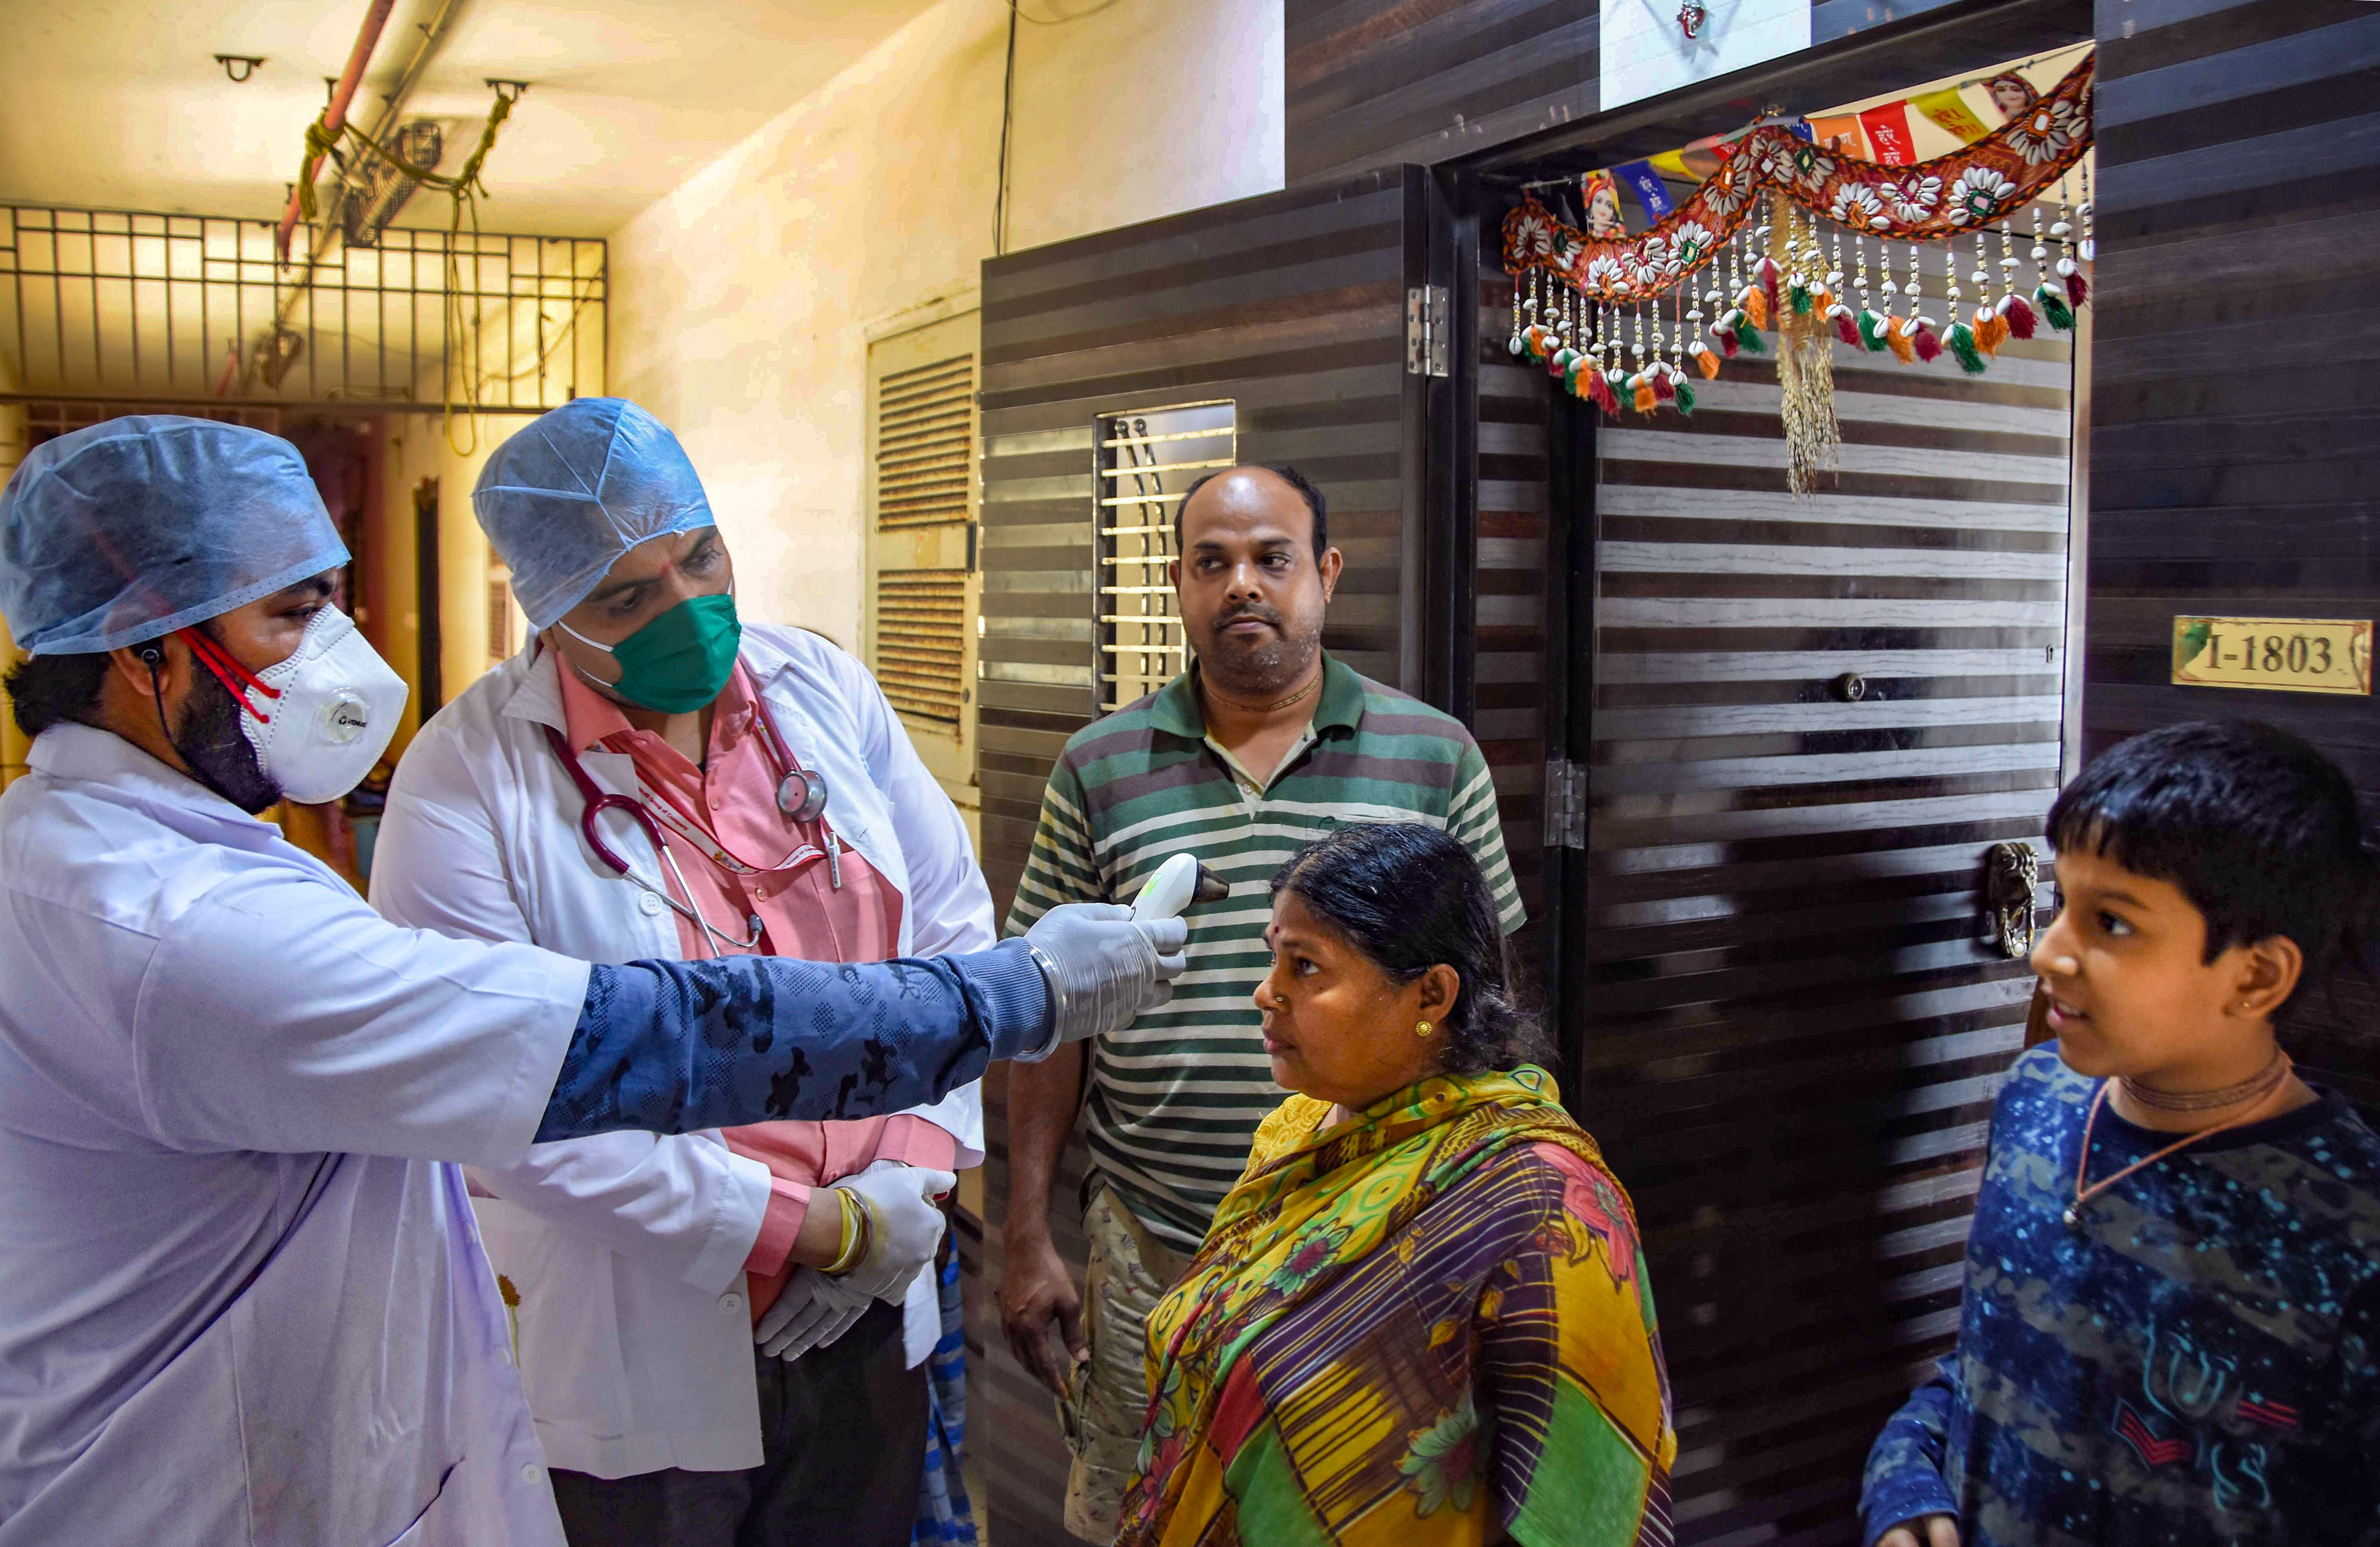 Medics from Rs 1 clinic conduct a door-to-door thermal screening of residents, during a nationwide lockdown, imposed in the wake of coronavirus pandemic, in Mumbai, Sunday, March 29, 2020